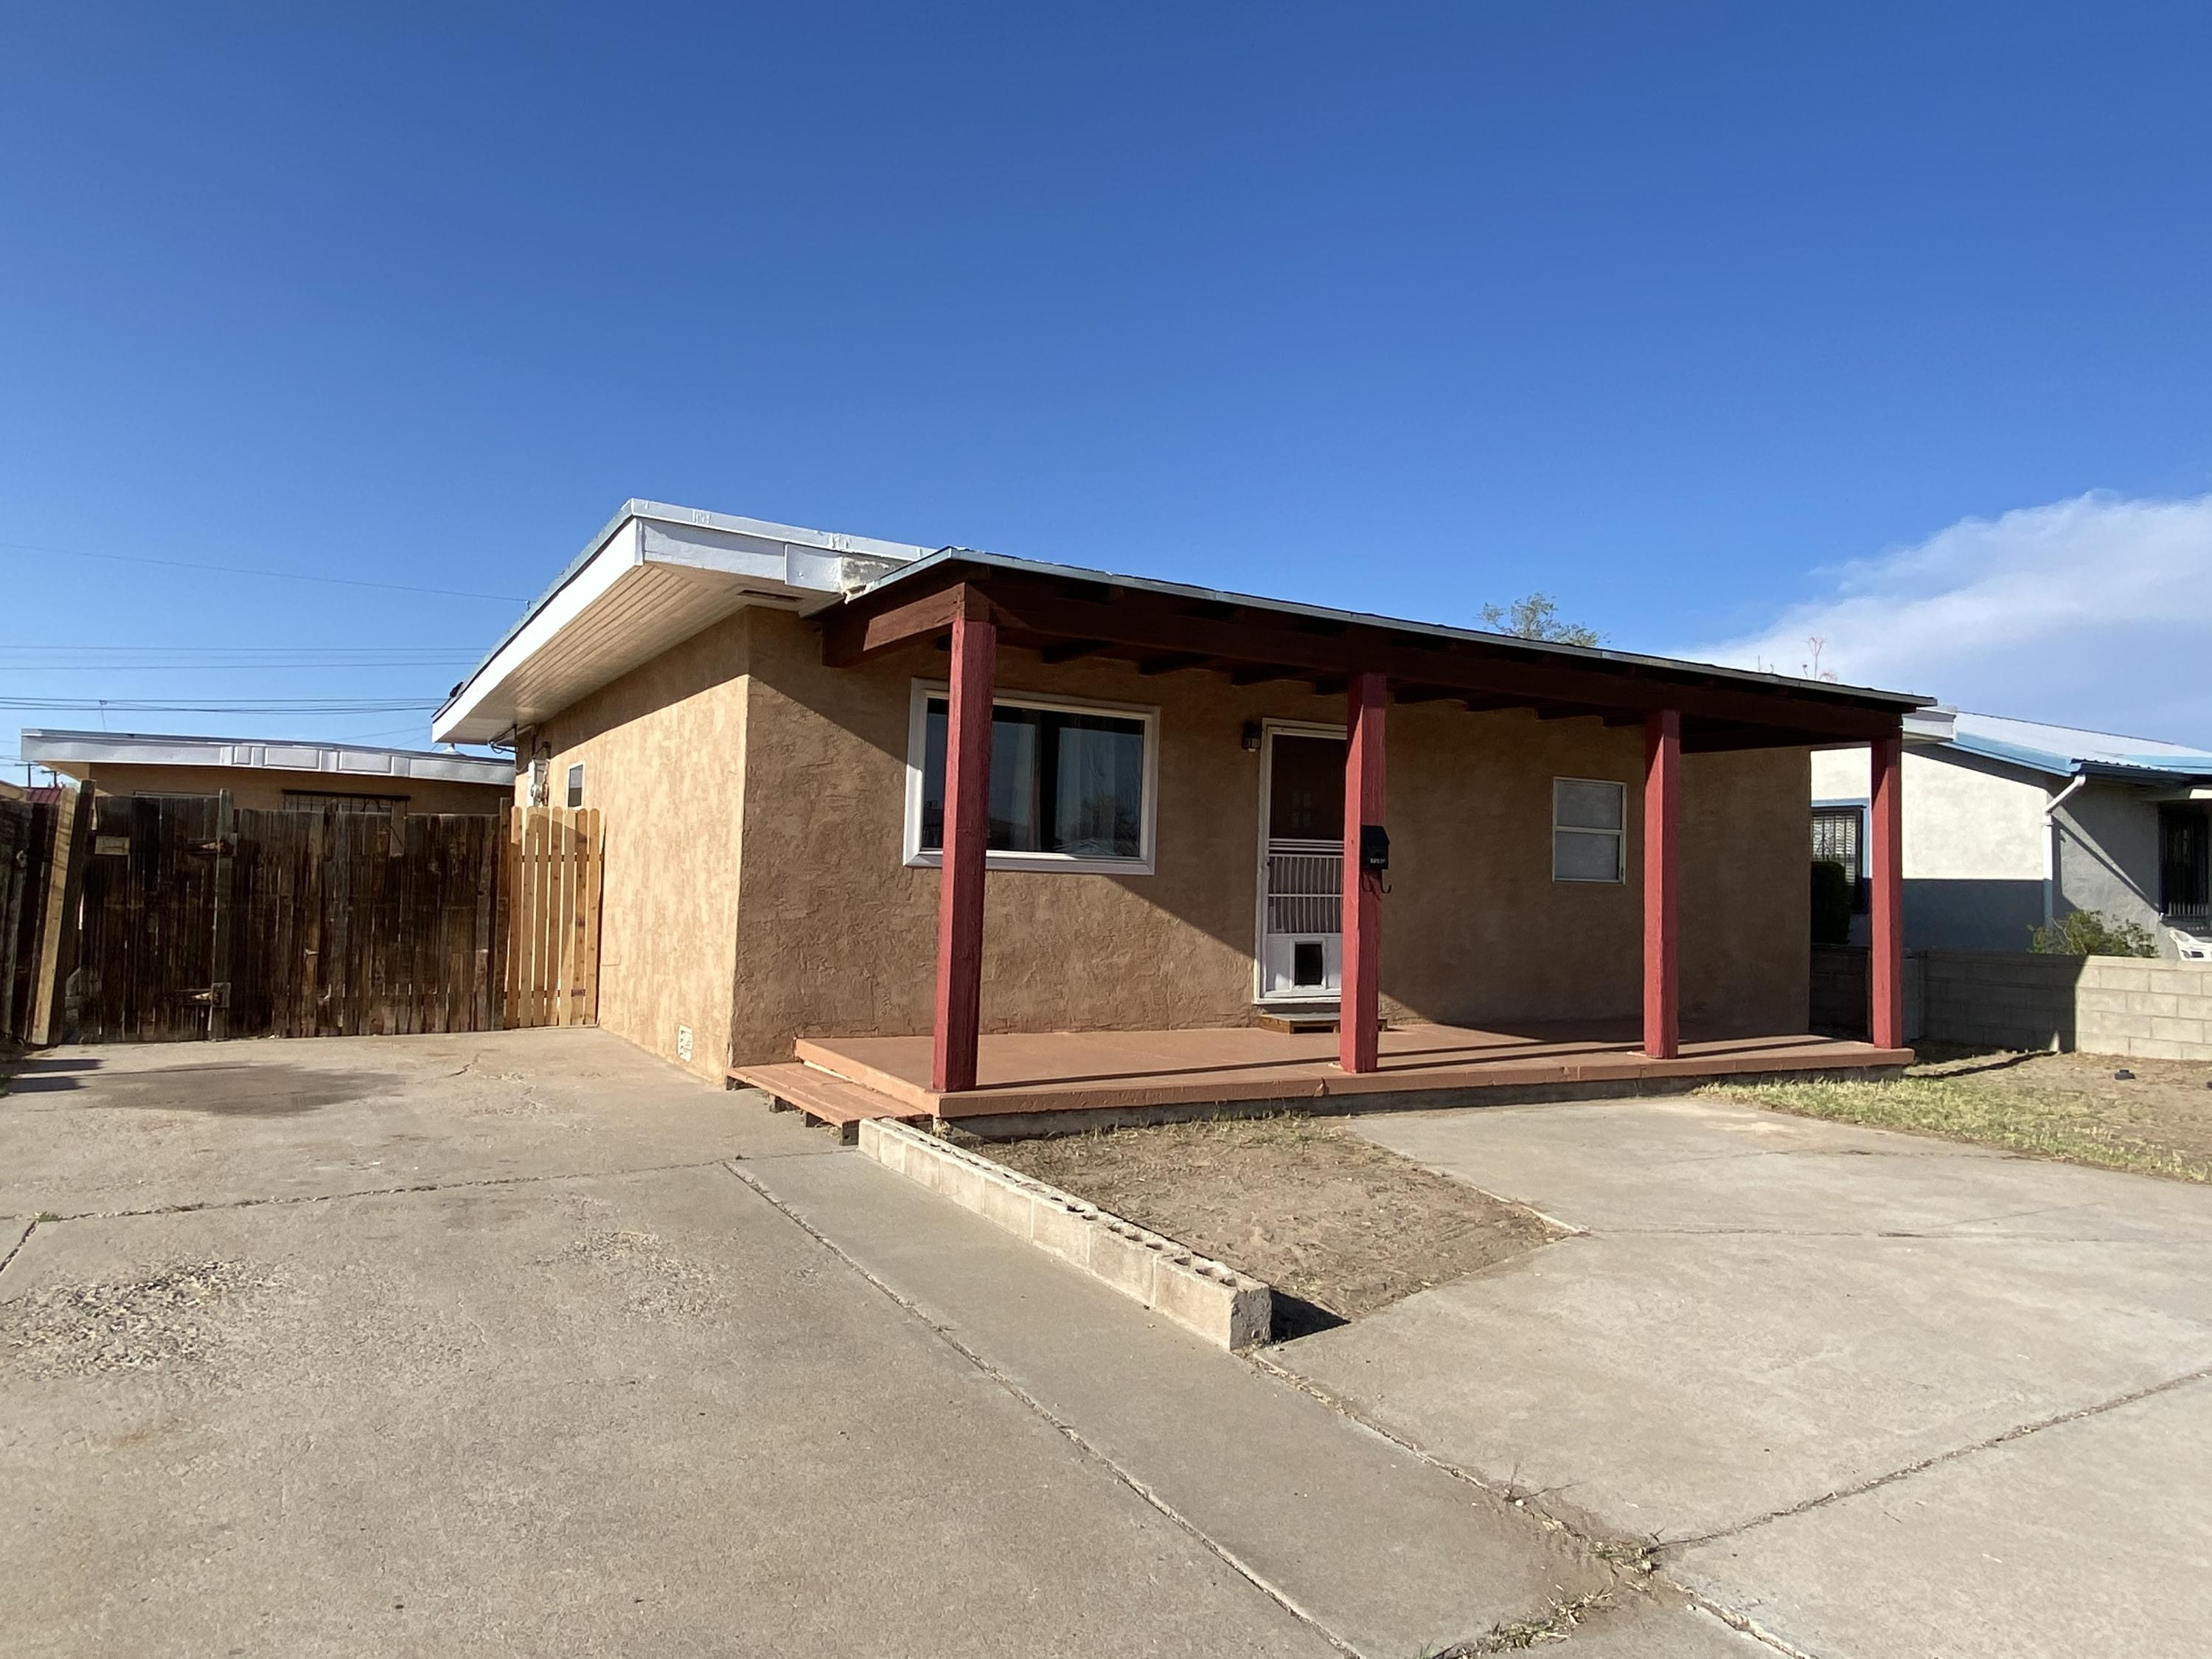 A Home with a Casita on a .21 acre lot! This is a great starter home or an investment property! The main home has 1129 square feet with two bedrooms 1 full bath and a 3/4 bath. The Casita/Guest House/In-Law Quarter has 574 sqft, with 1 bedroom and 1 full bath. All appliances will convey in ''AS-IS'' Condition and the Home is being sold in 'AS-IS'' Condition.